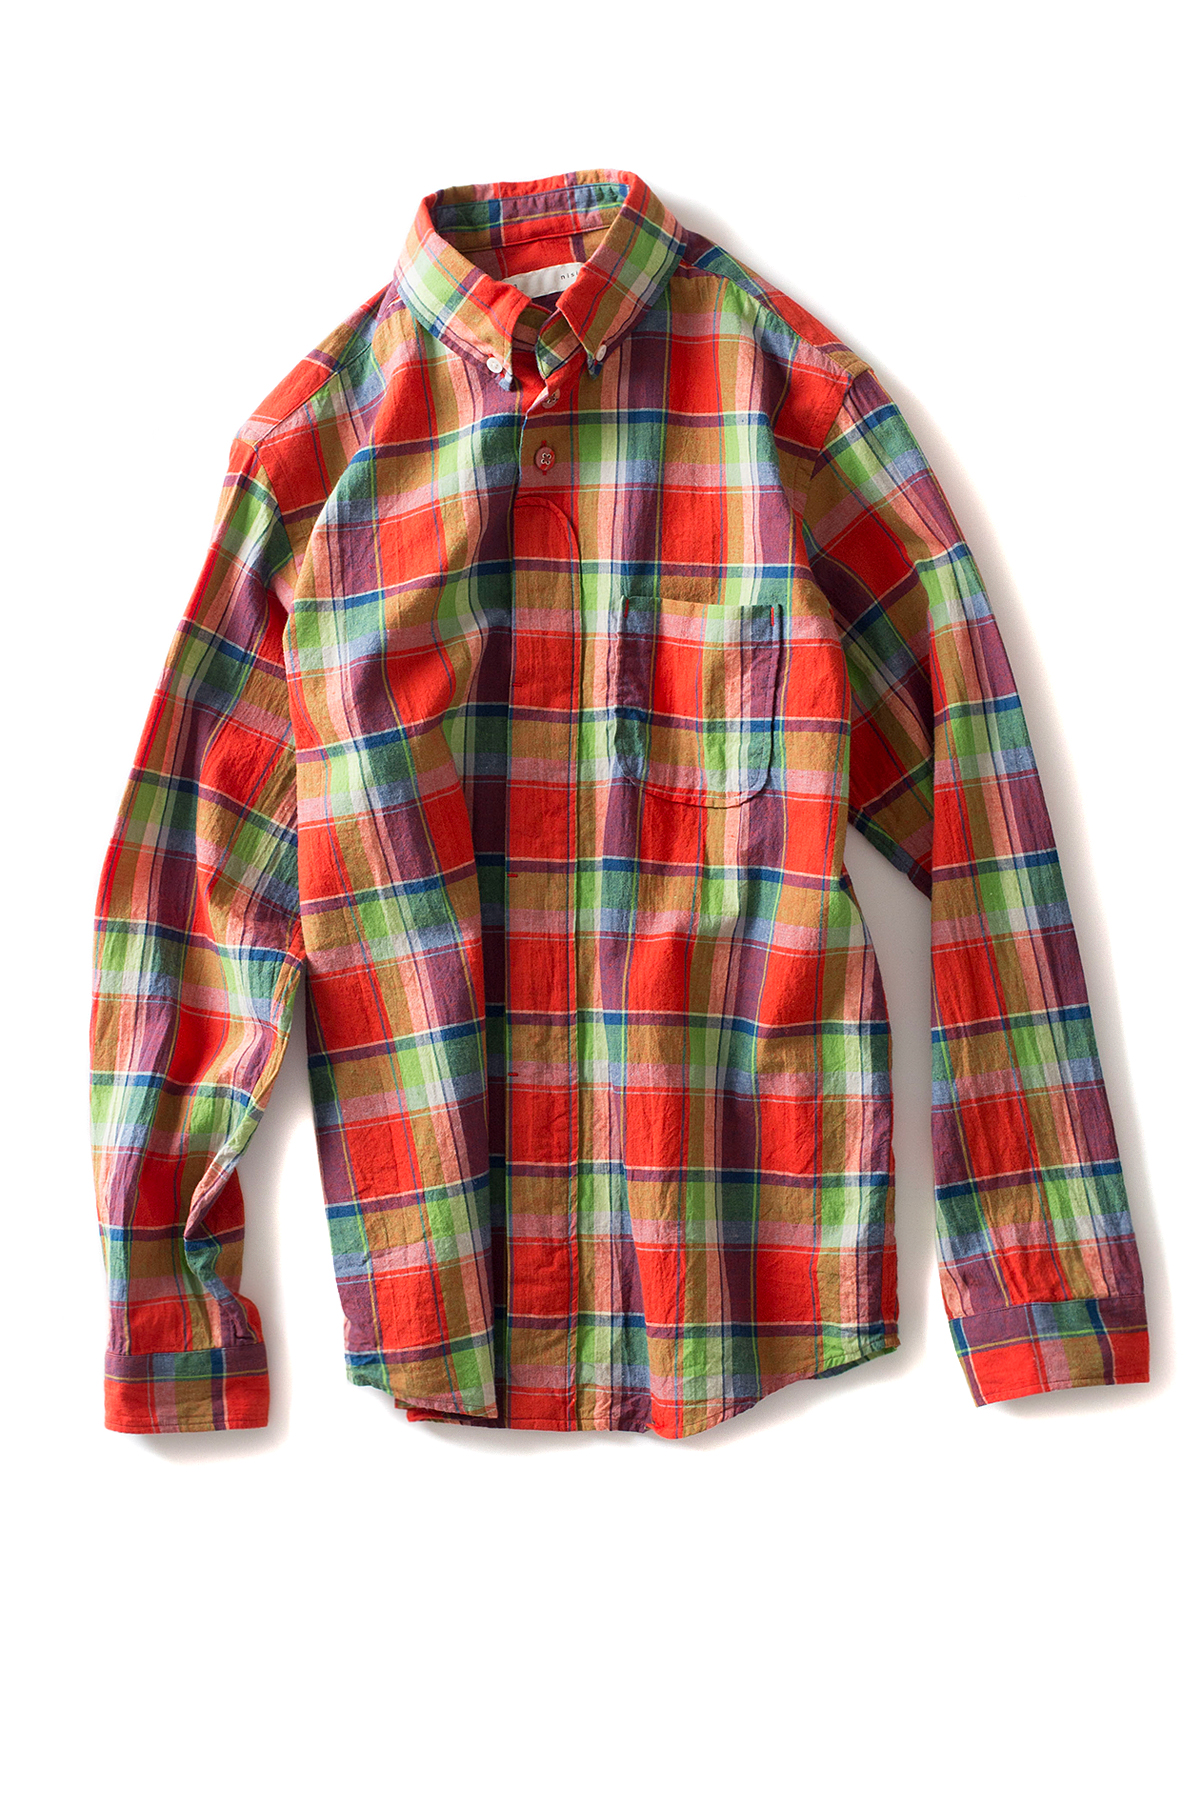 nisica : B.D Check Shirt (Orange)